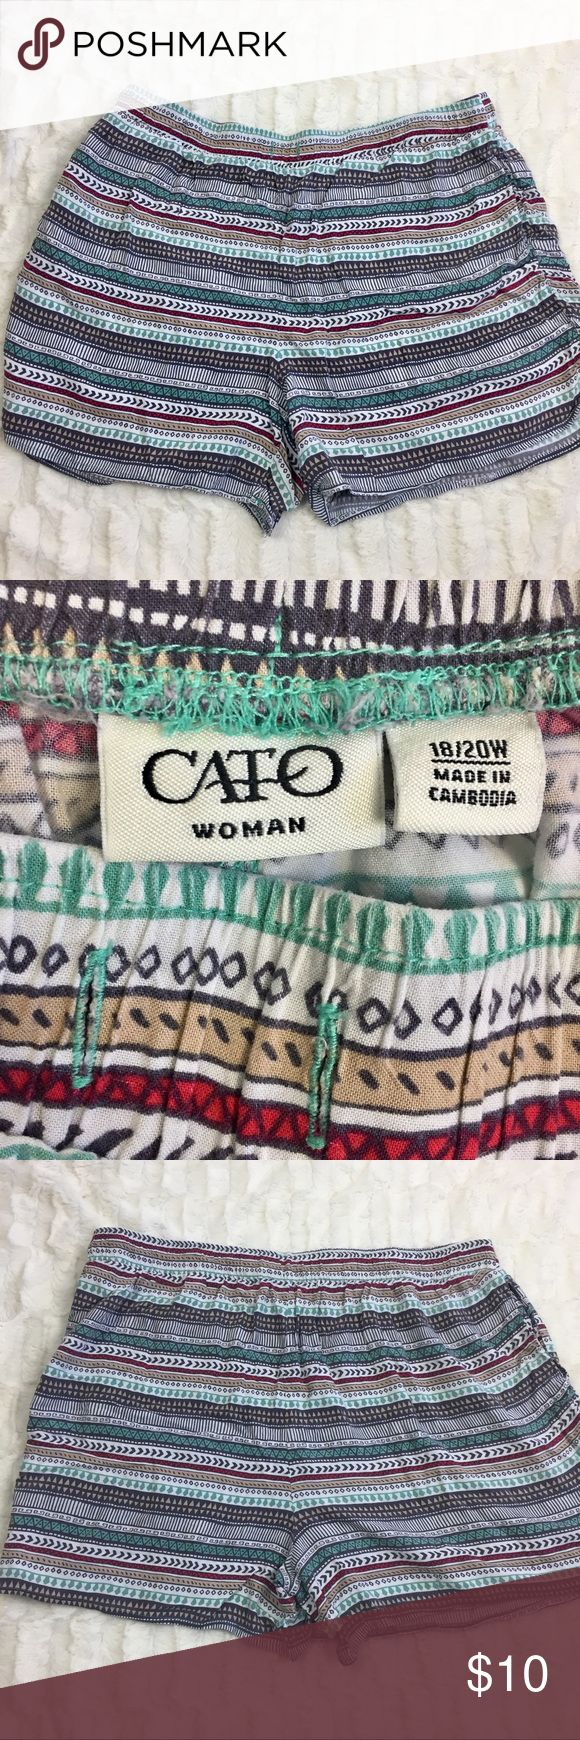 Cato size 18/20W Tribal Shorts. Super Trendy. Has Pockets. Cato 18/20W Tribal Shorts. 100% Rayon. Missing Draw String. Cato Shorts